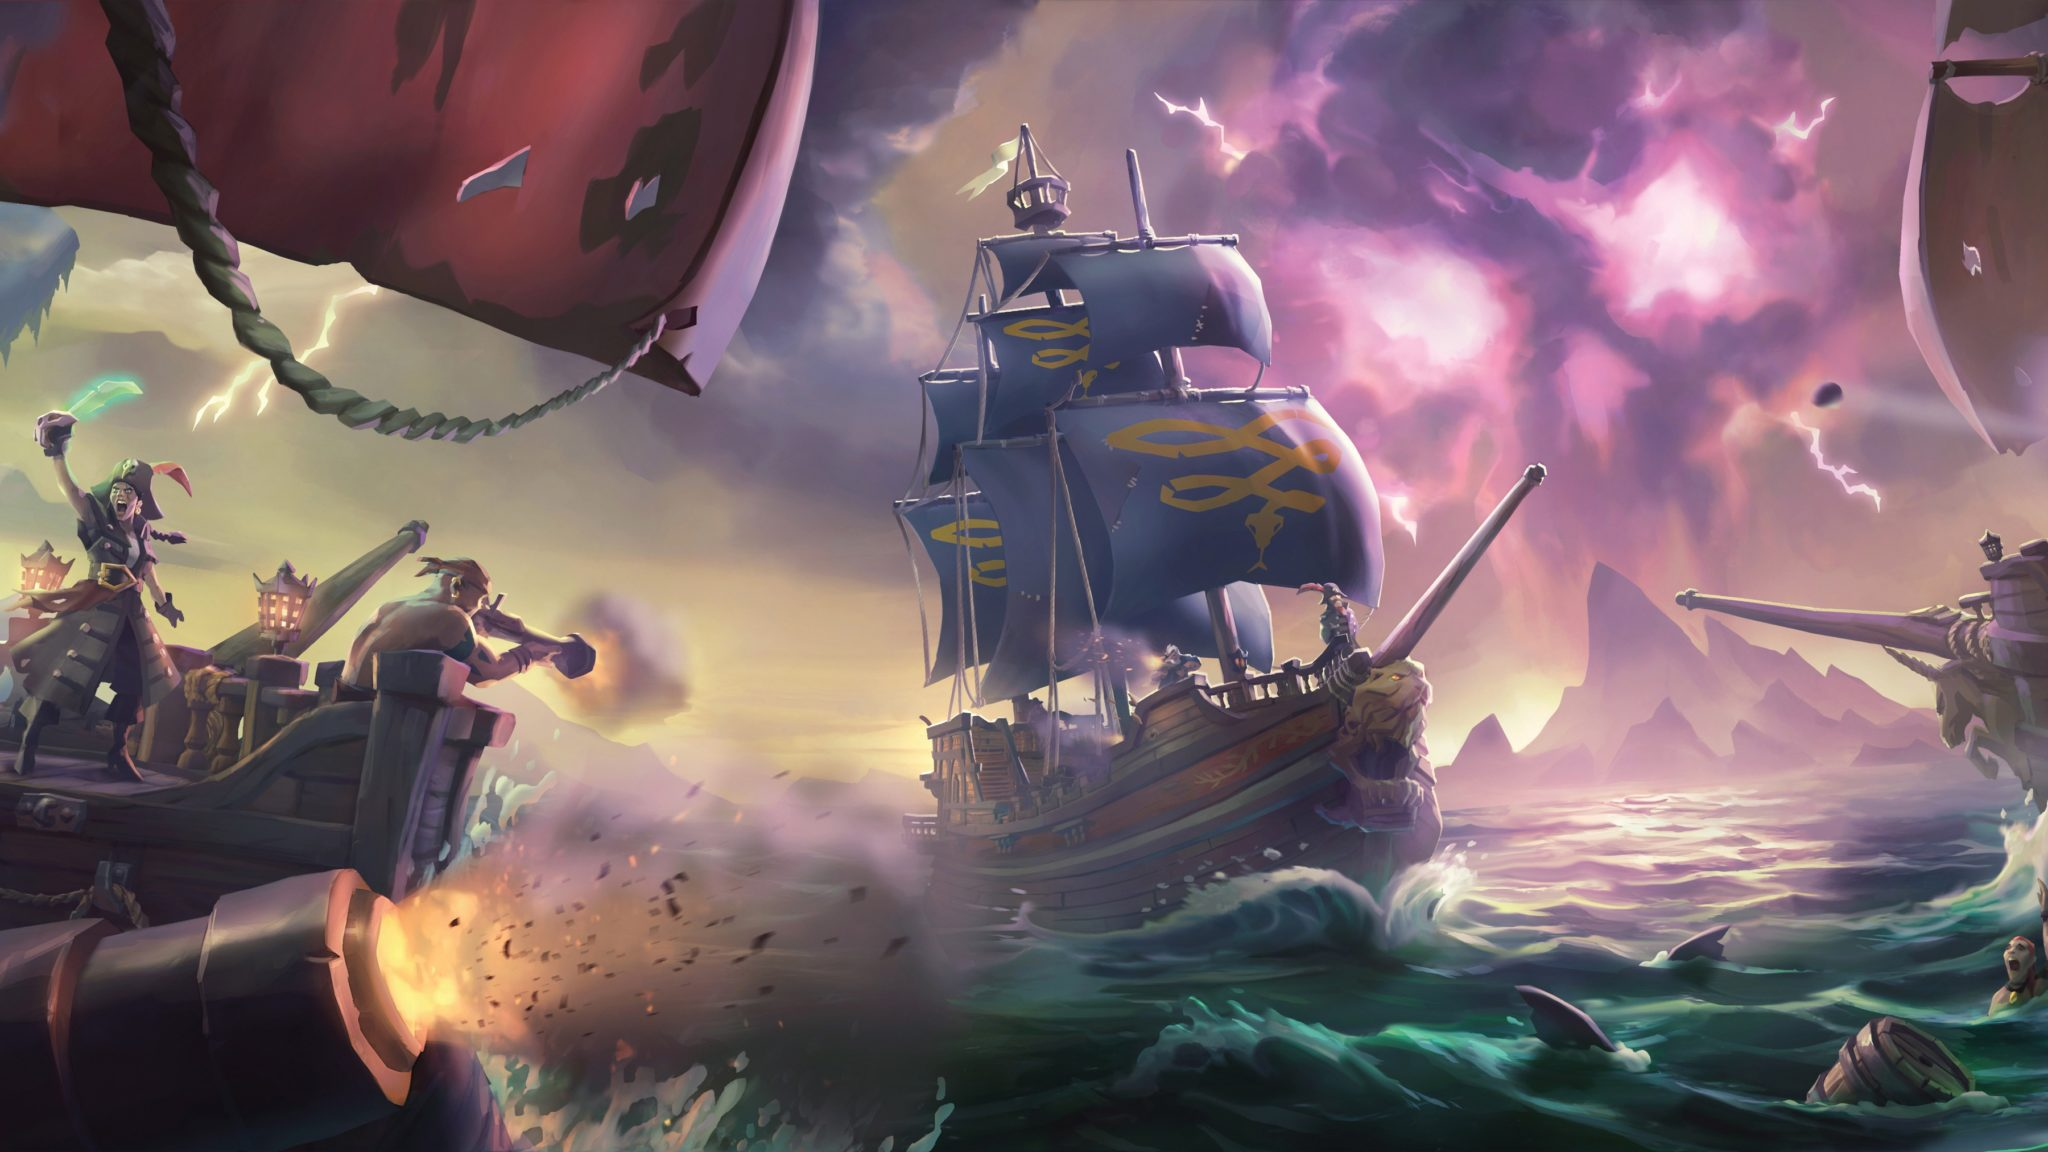 13 Hd Sea Of Thieves Wallpapers